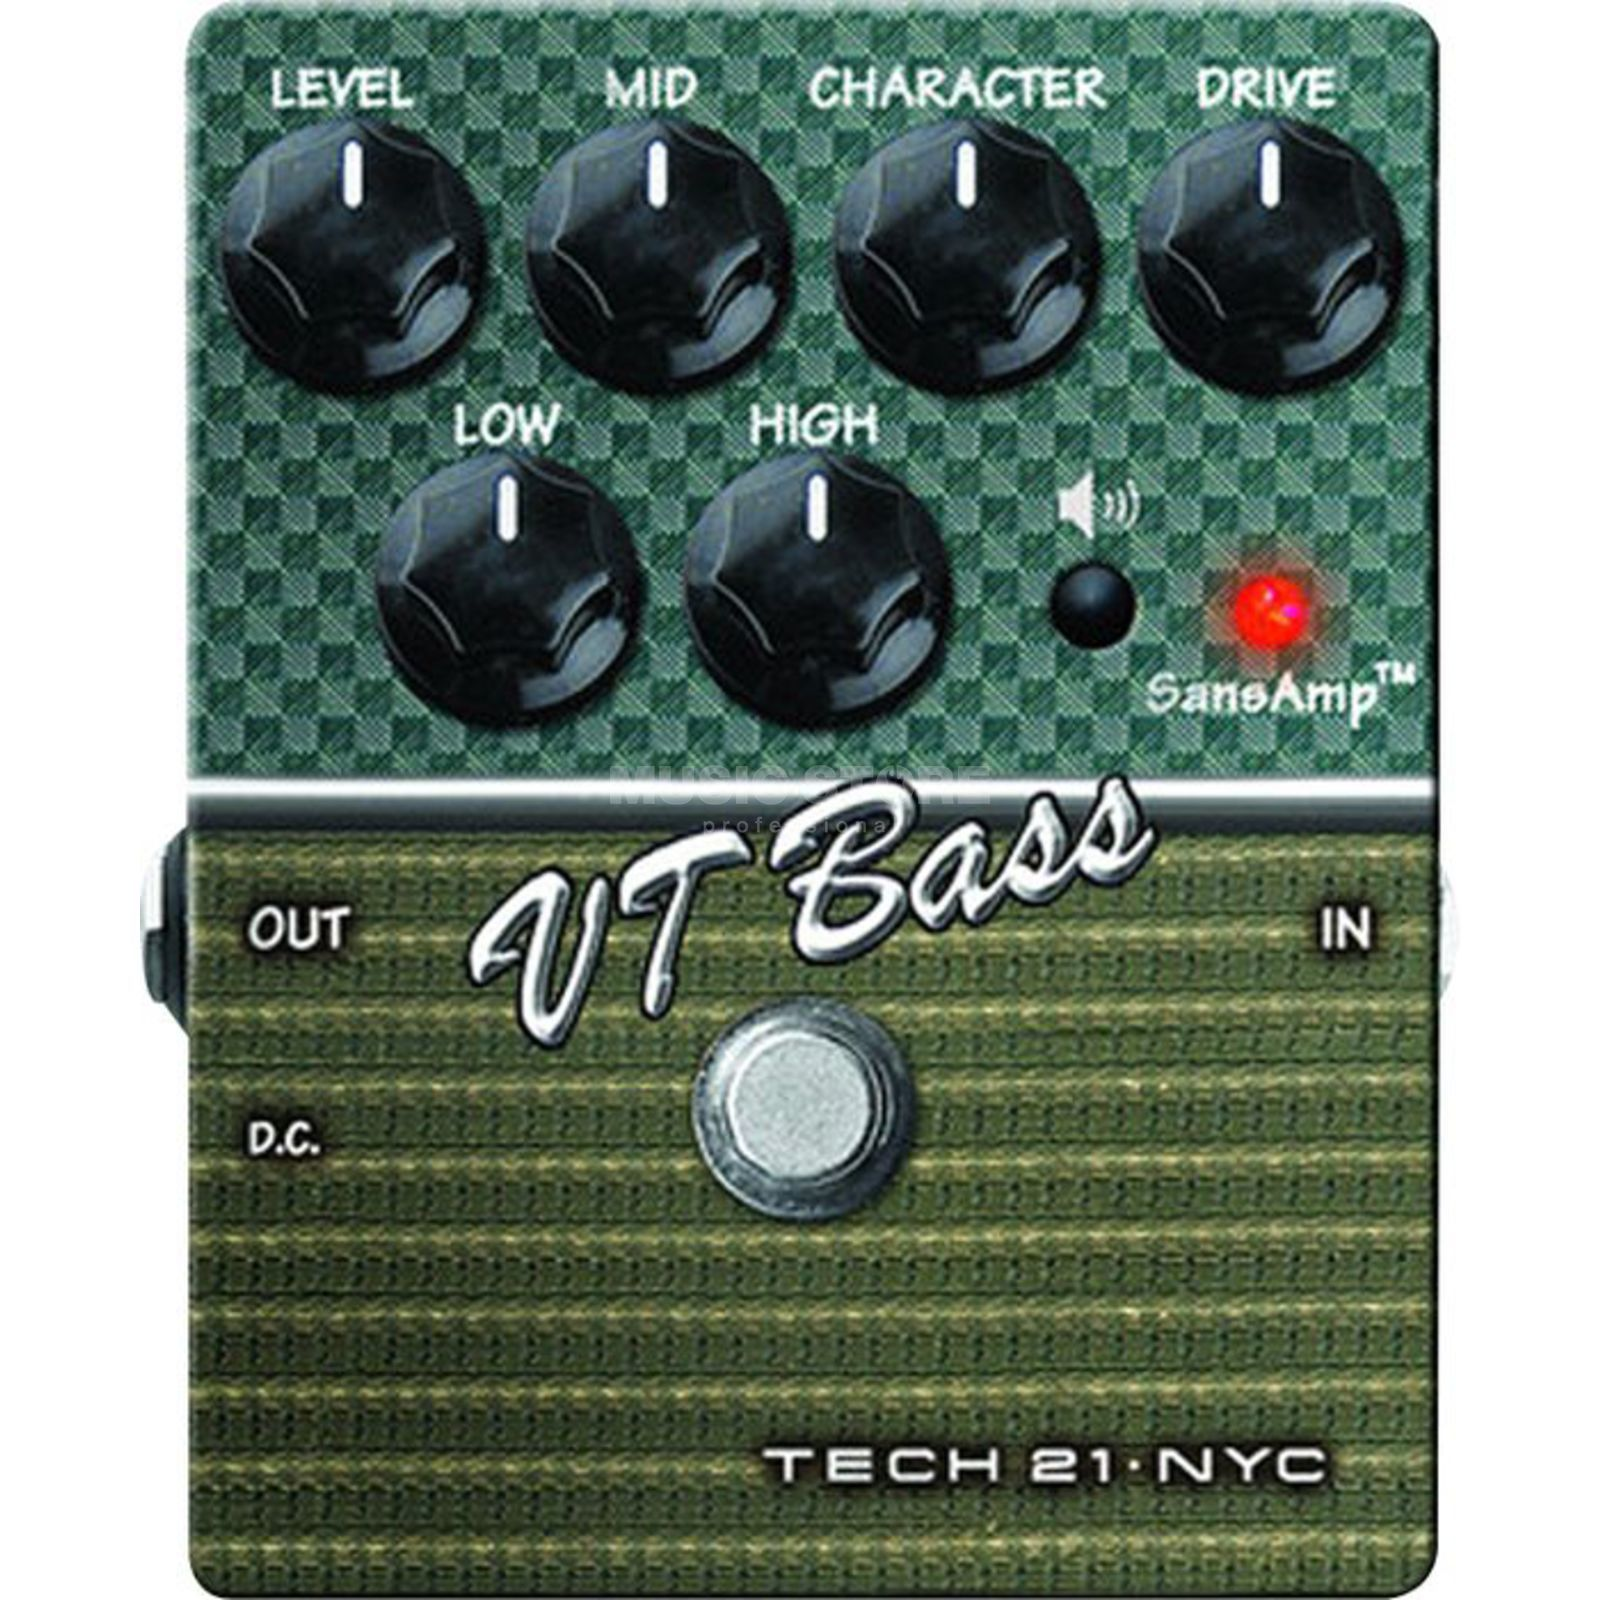 Tech 21 VT Bass V2 Pedal  Product Image